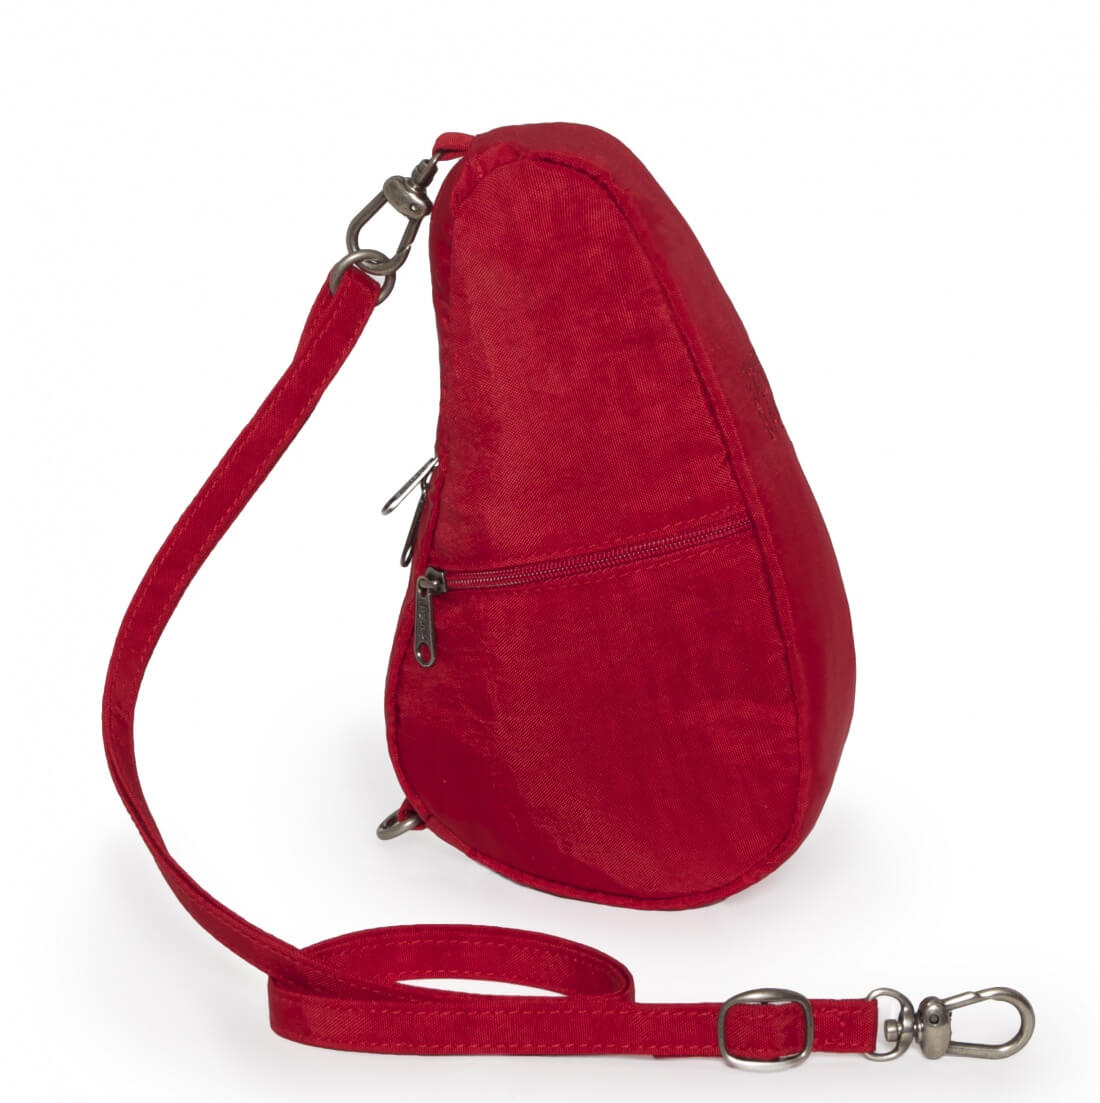 Healthy Back Bag Baglett Textured Nylon Crimson-12697